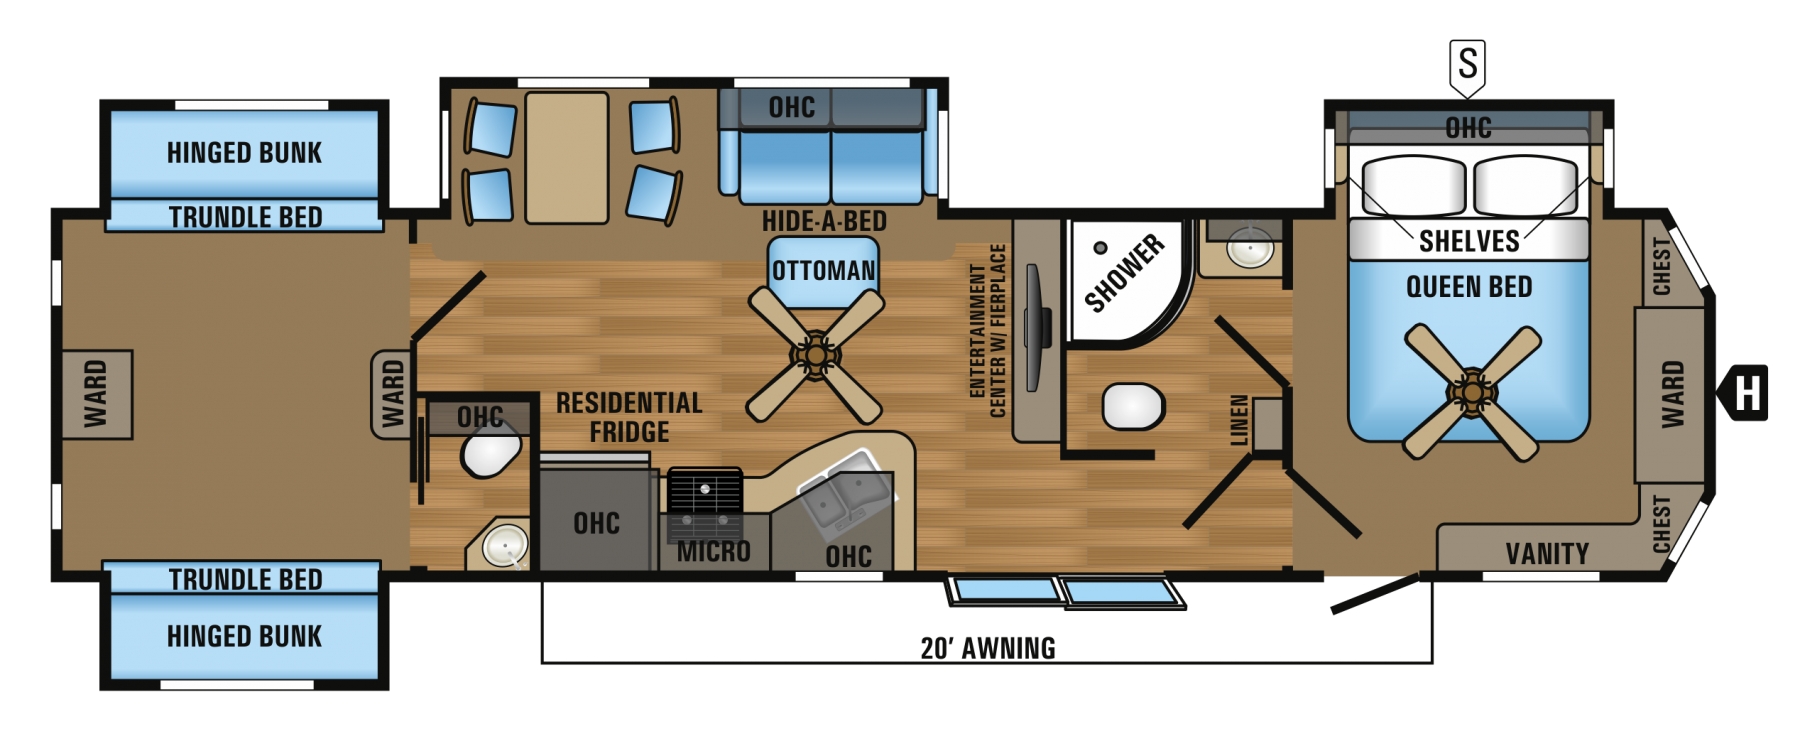 Travel Trailer 2 Bedroom 2 Bathroom Will Actually Fit 4 6 Kids And 2 Parents Travel Trailer Floor Plans Jayco Travel Trailers Travel Trailer